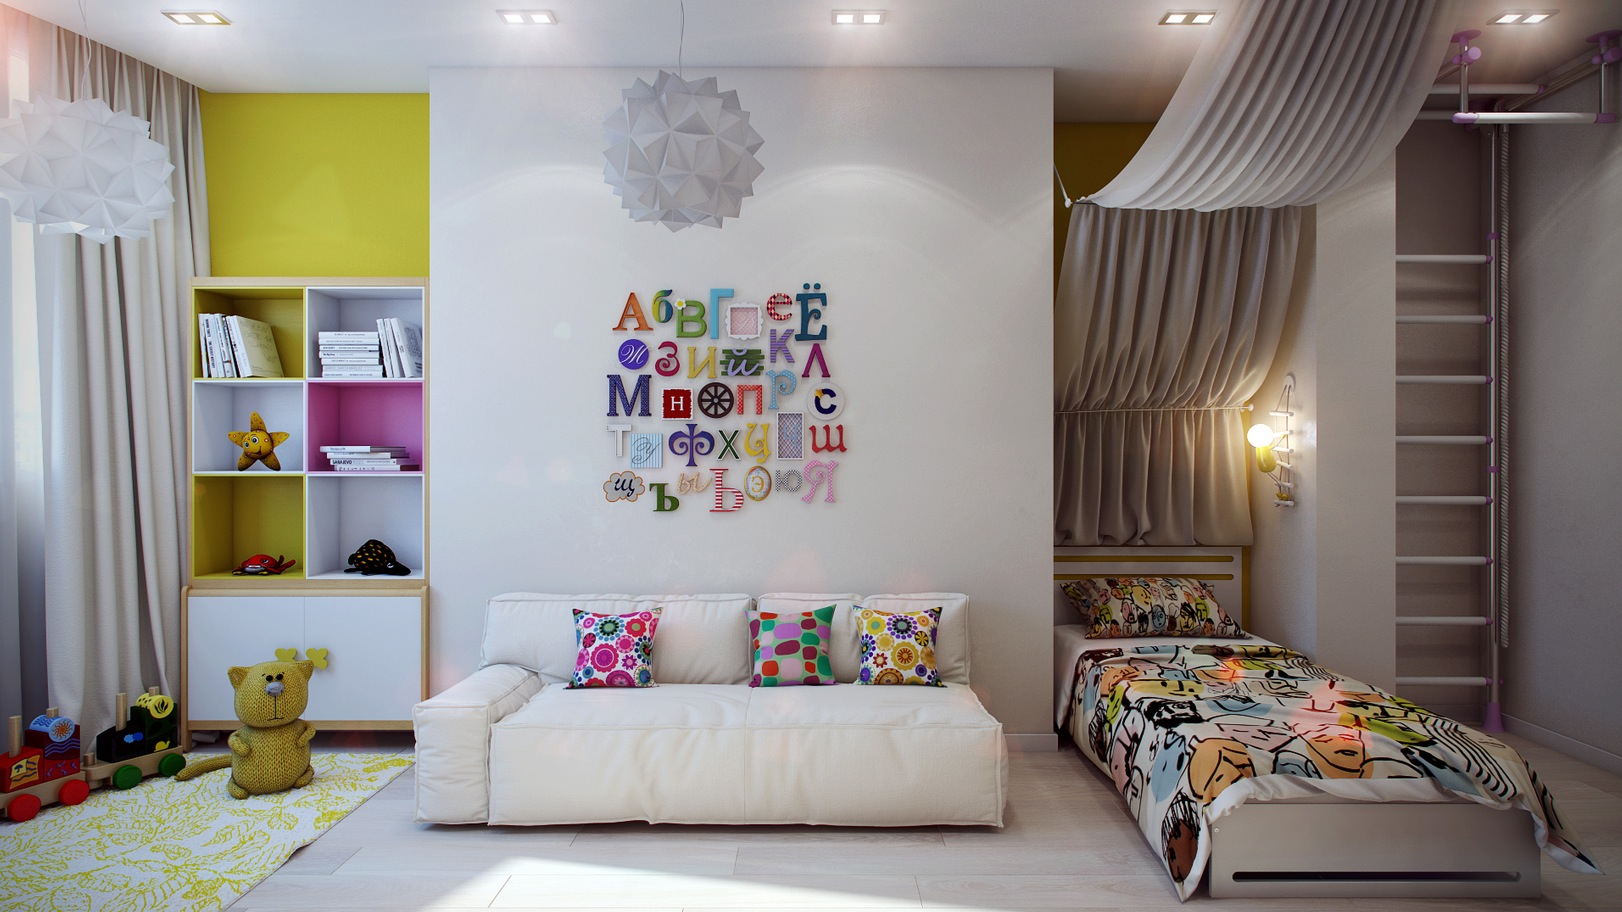 Casting color over kids rooms - Children bedrooms ...